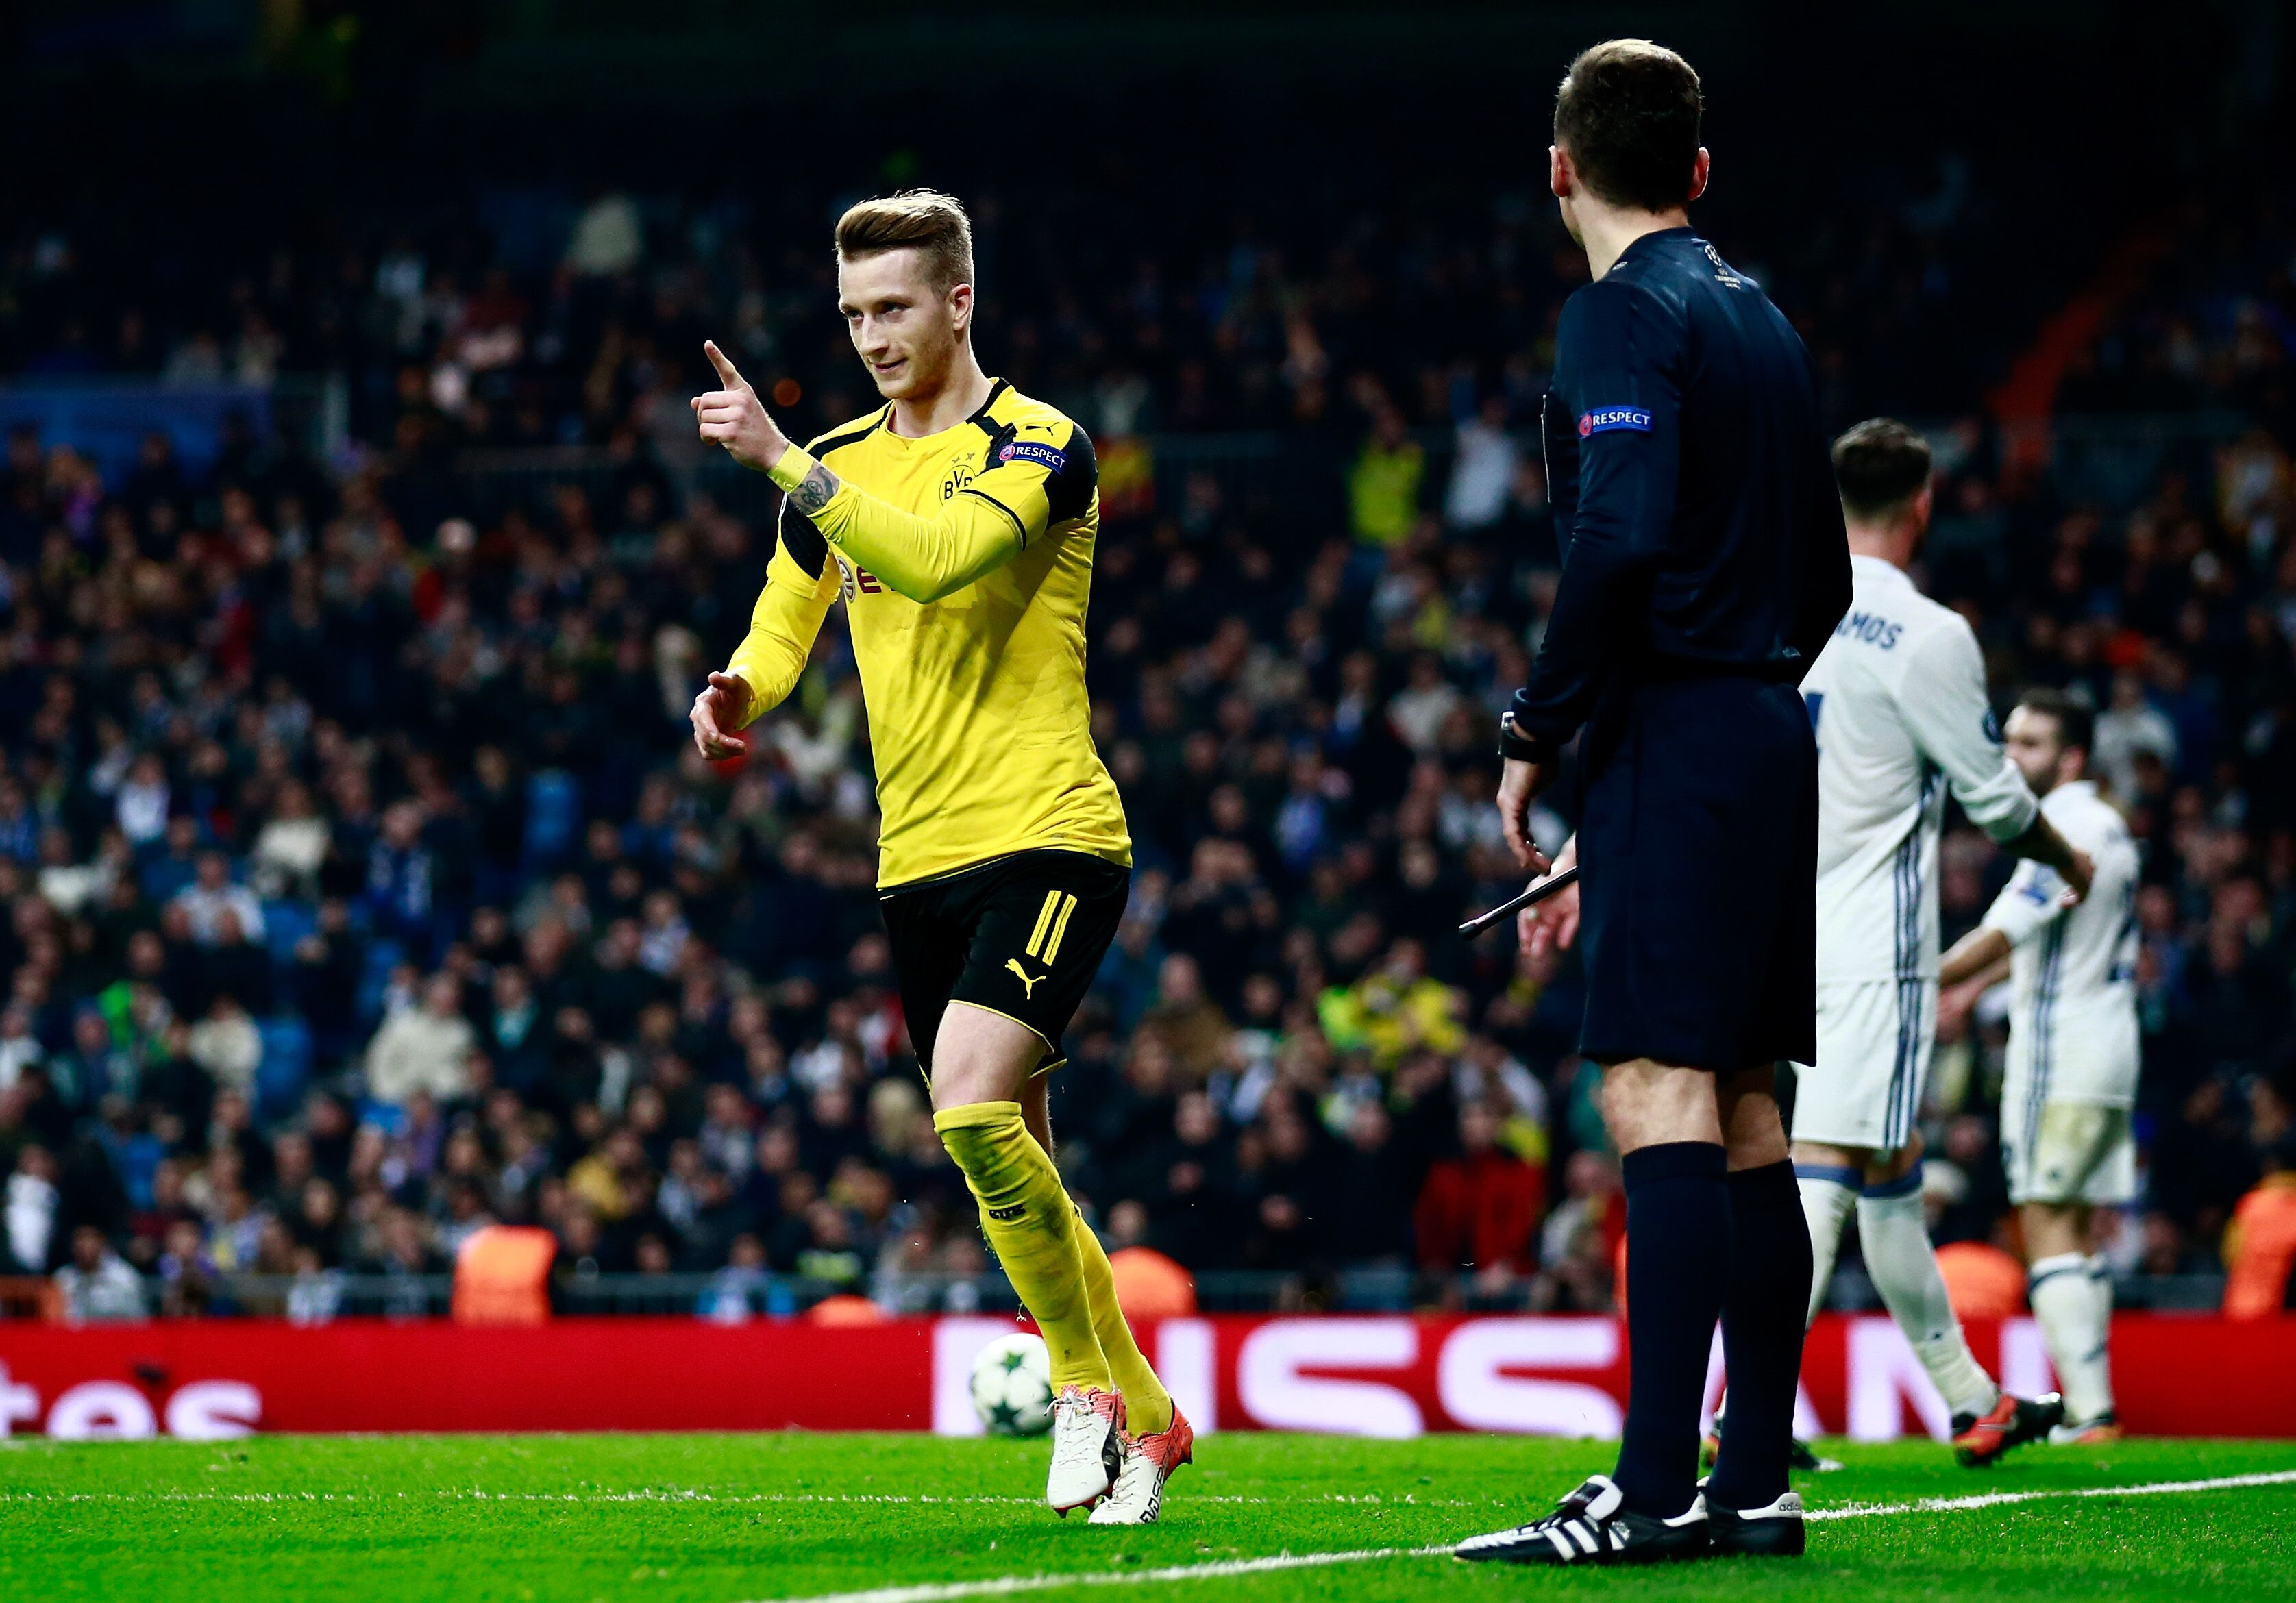 Marco Reus the Derrick Rose of the Soccer